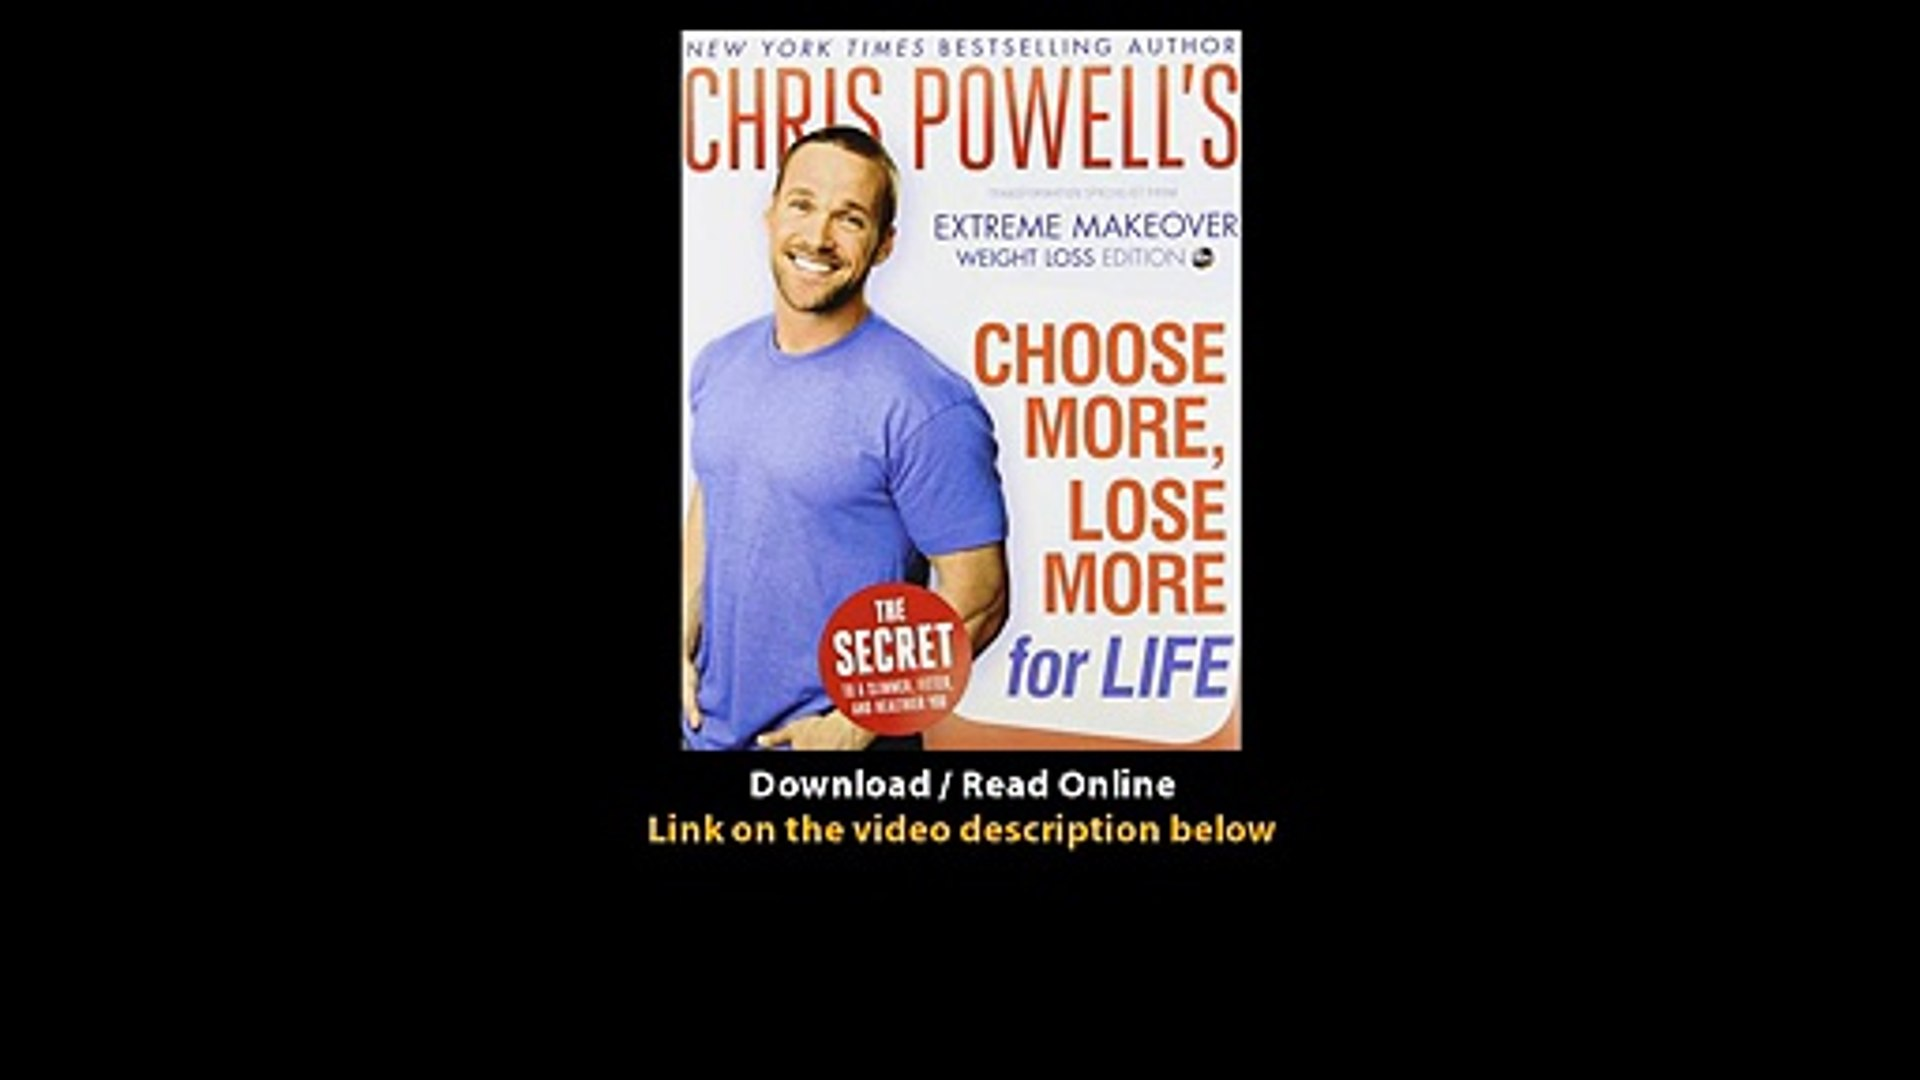 Download Chris Powells Choose More Lose More for Life By Chris Powell PDF.mp4